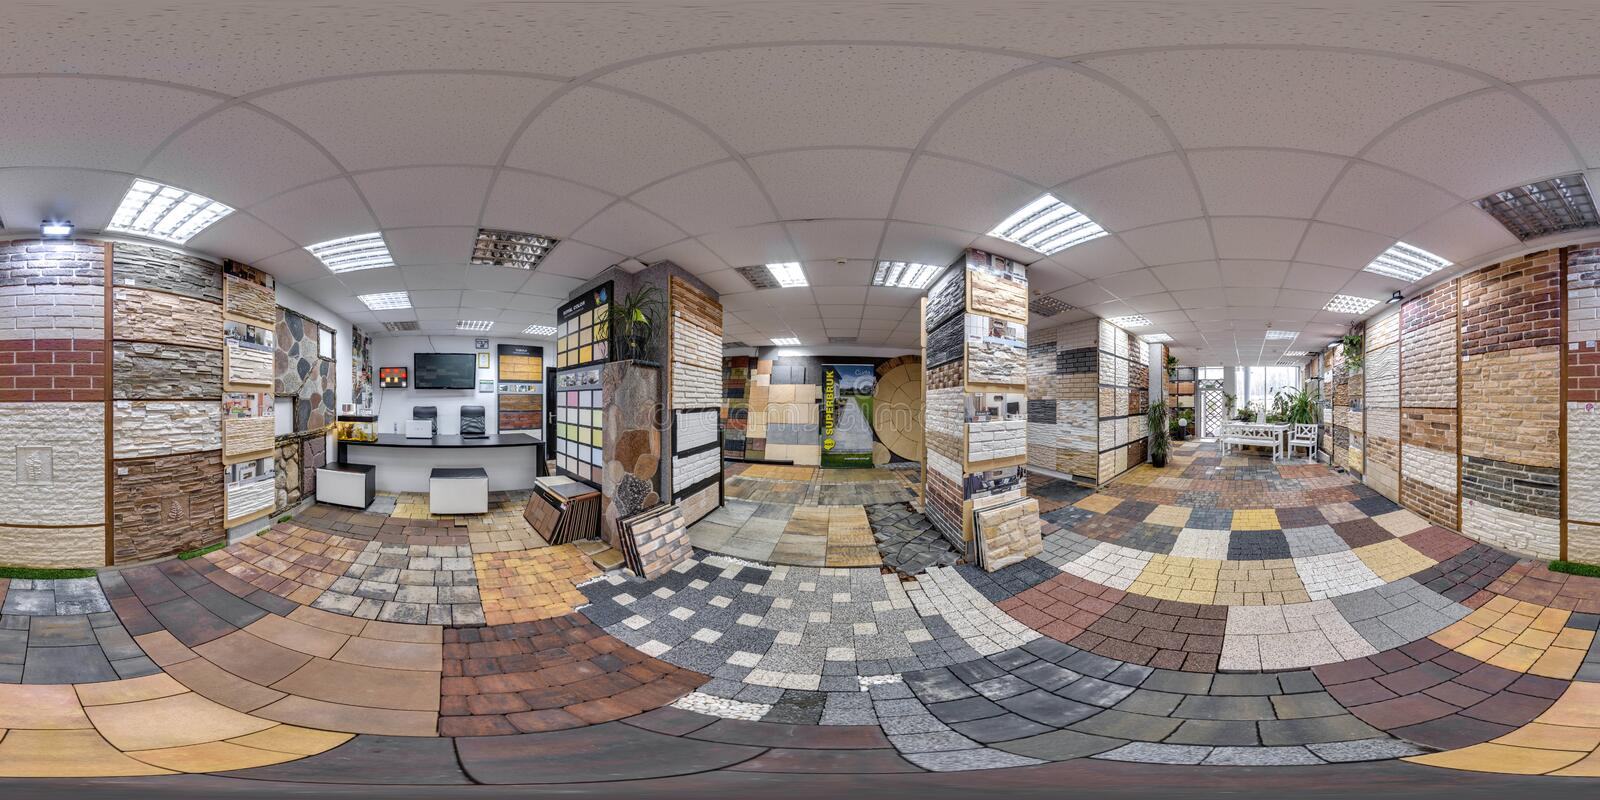 Moscow-2018: 3D spherical panorama with 360 degree viewing angle of the hardware store interior with paving slab and decorative ti. Les. Full equirectangular stock photo